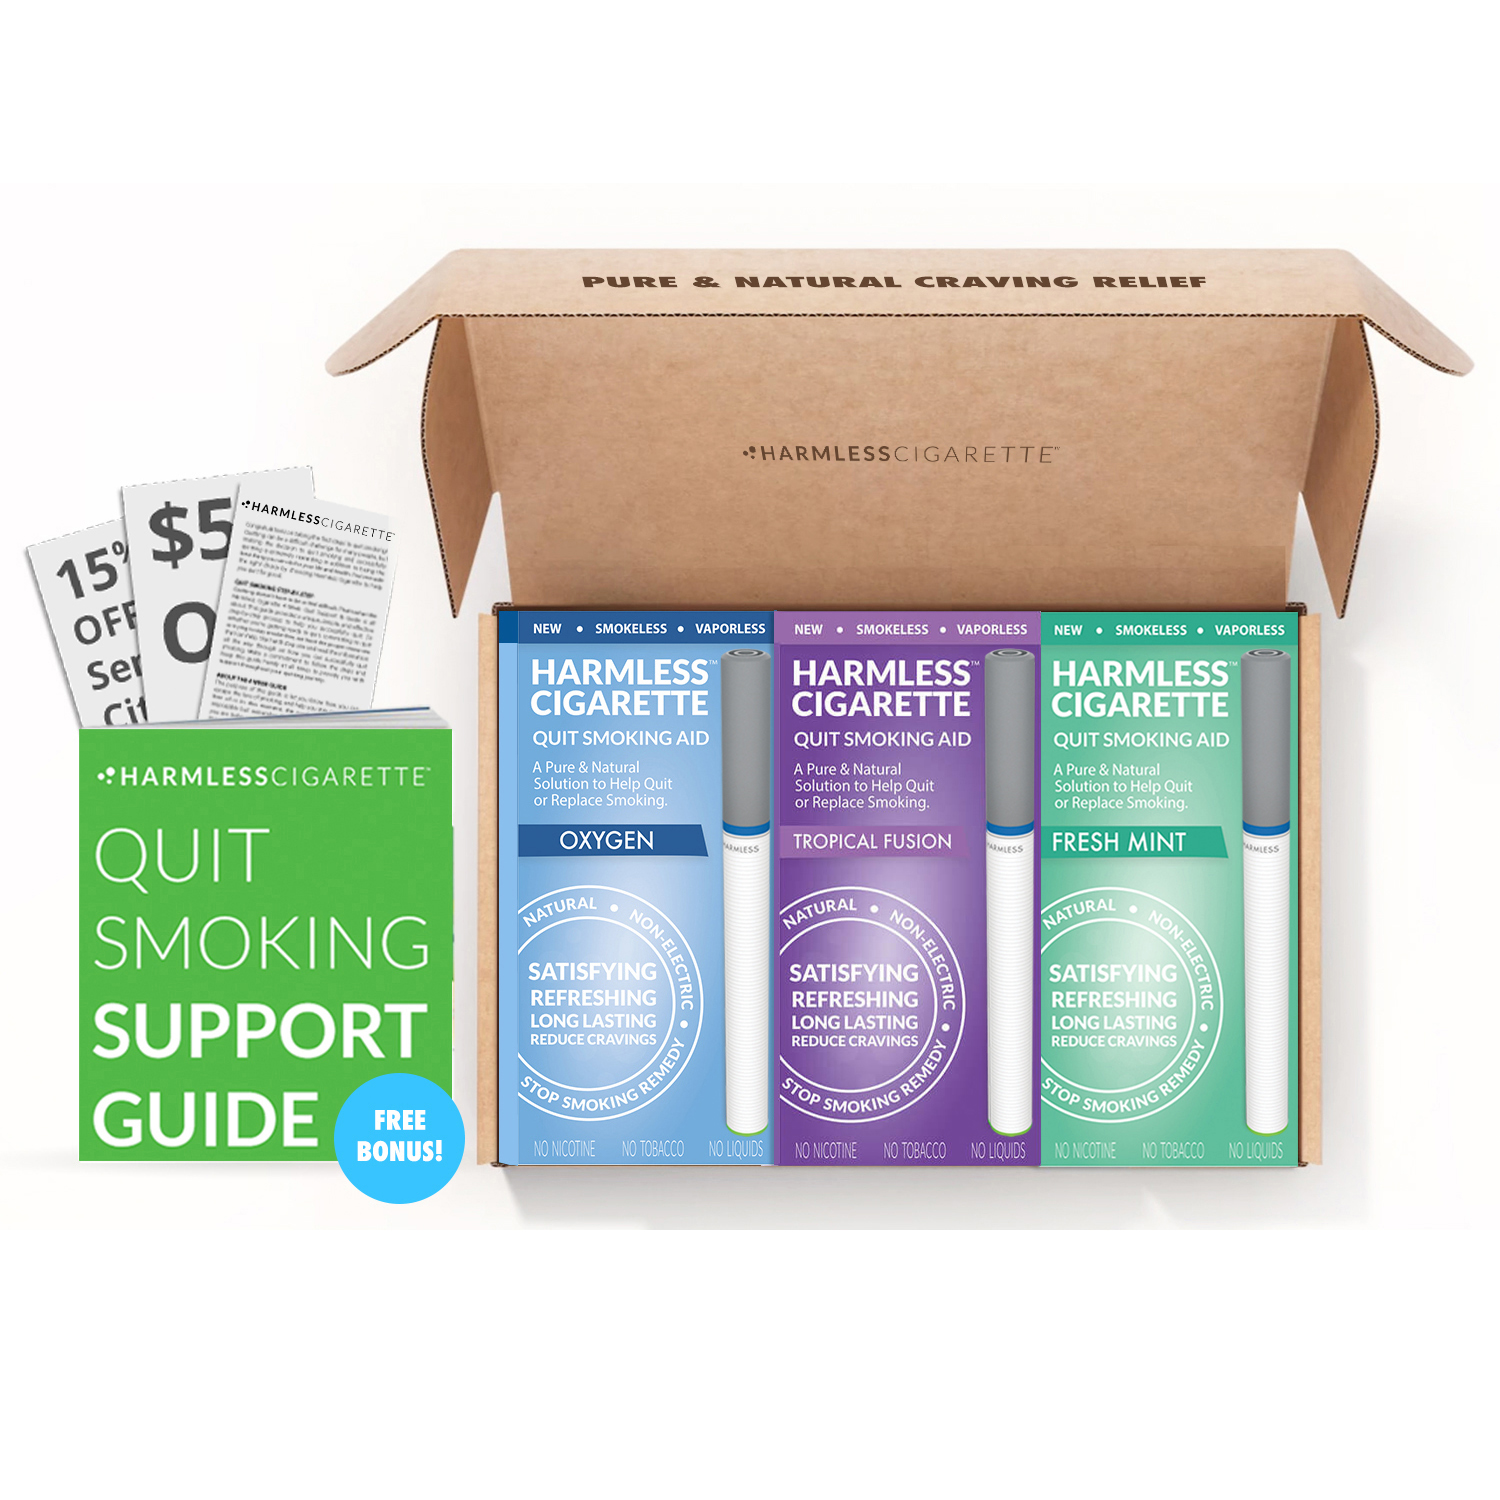 Natural Quit Smoking Aid Habit Replacement / Craving Relief Product to Help Stop Smoking / FREE Support Guide Included / Five Star - Harmless Cigarette Reviews